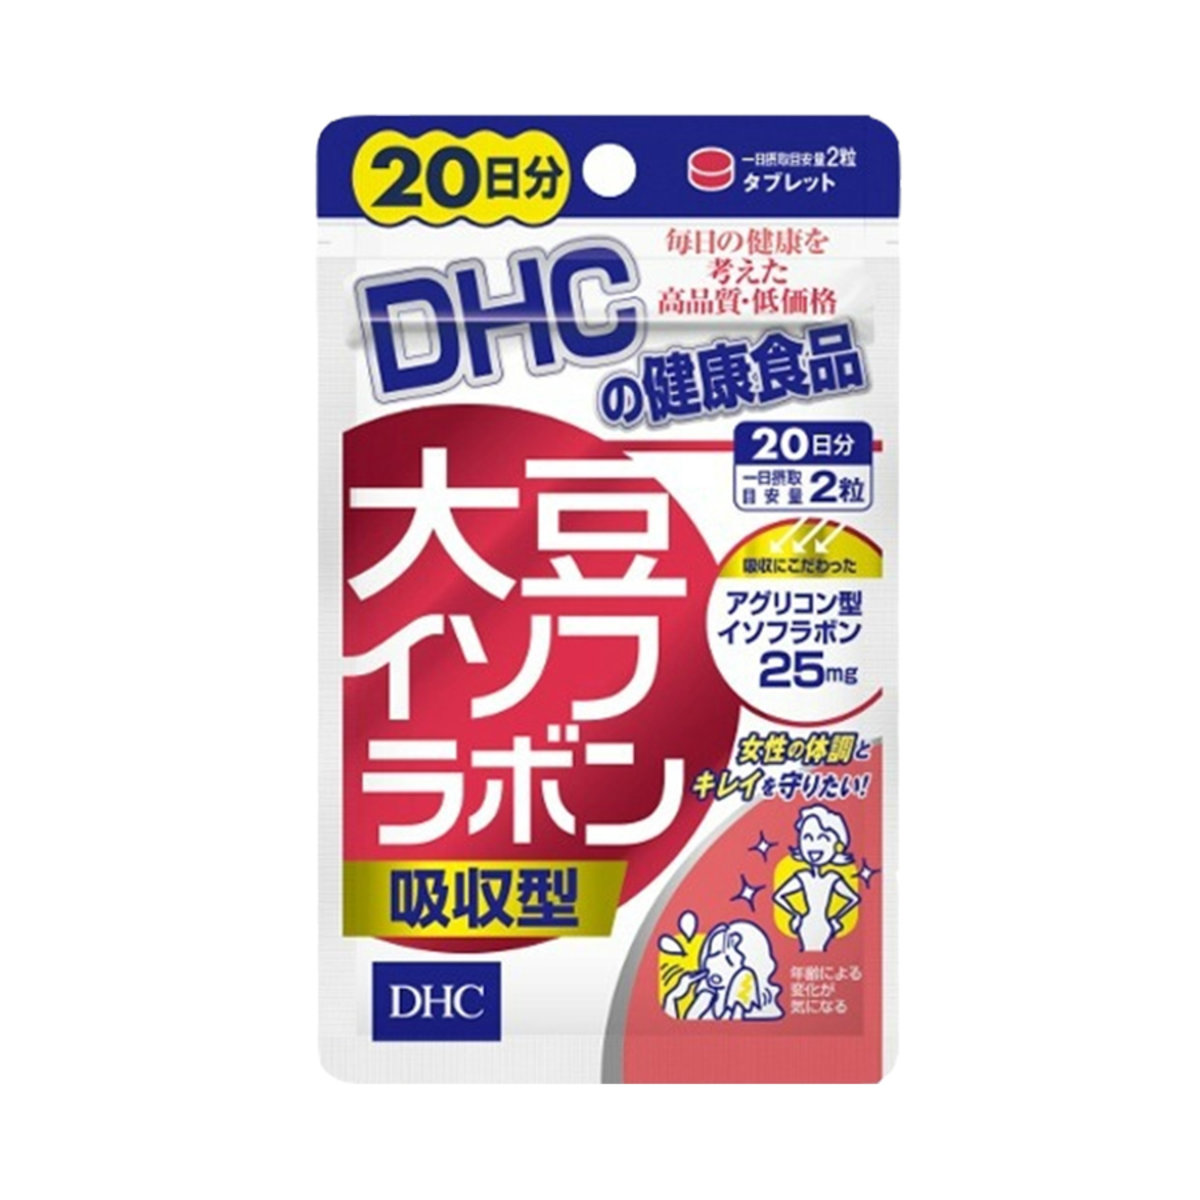 DHC Soy Extract (20Days) 40 Tablets (Parallel Import)